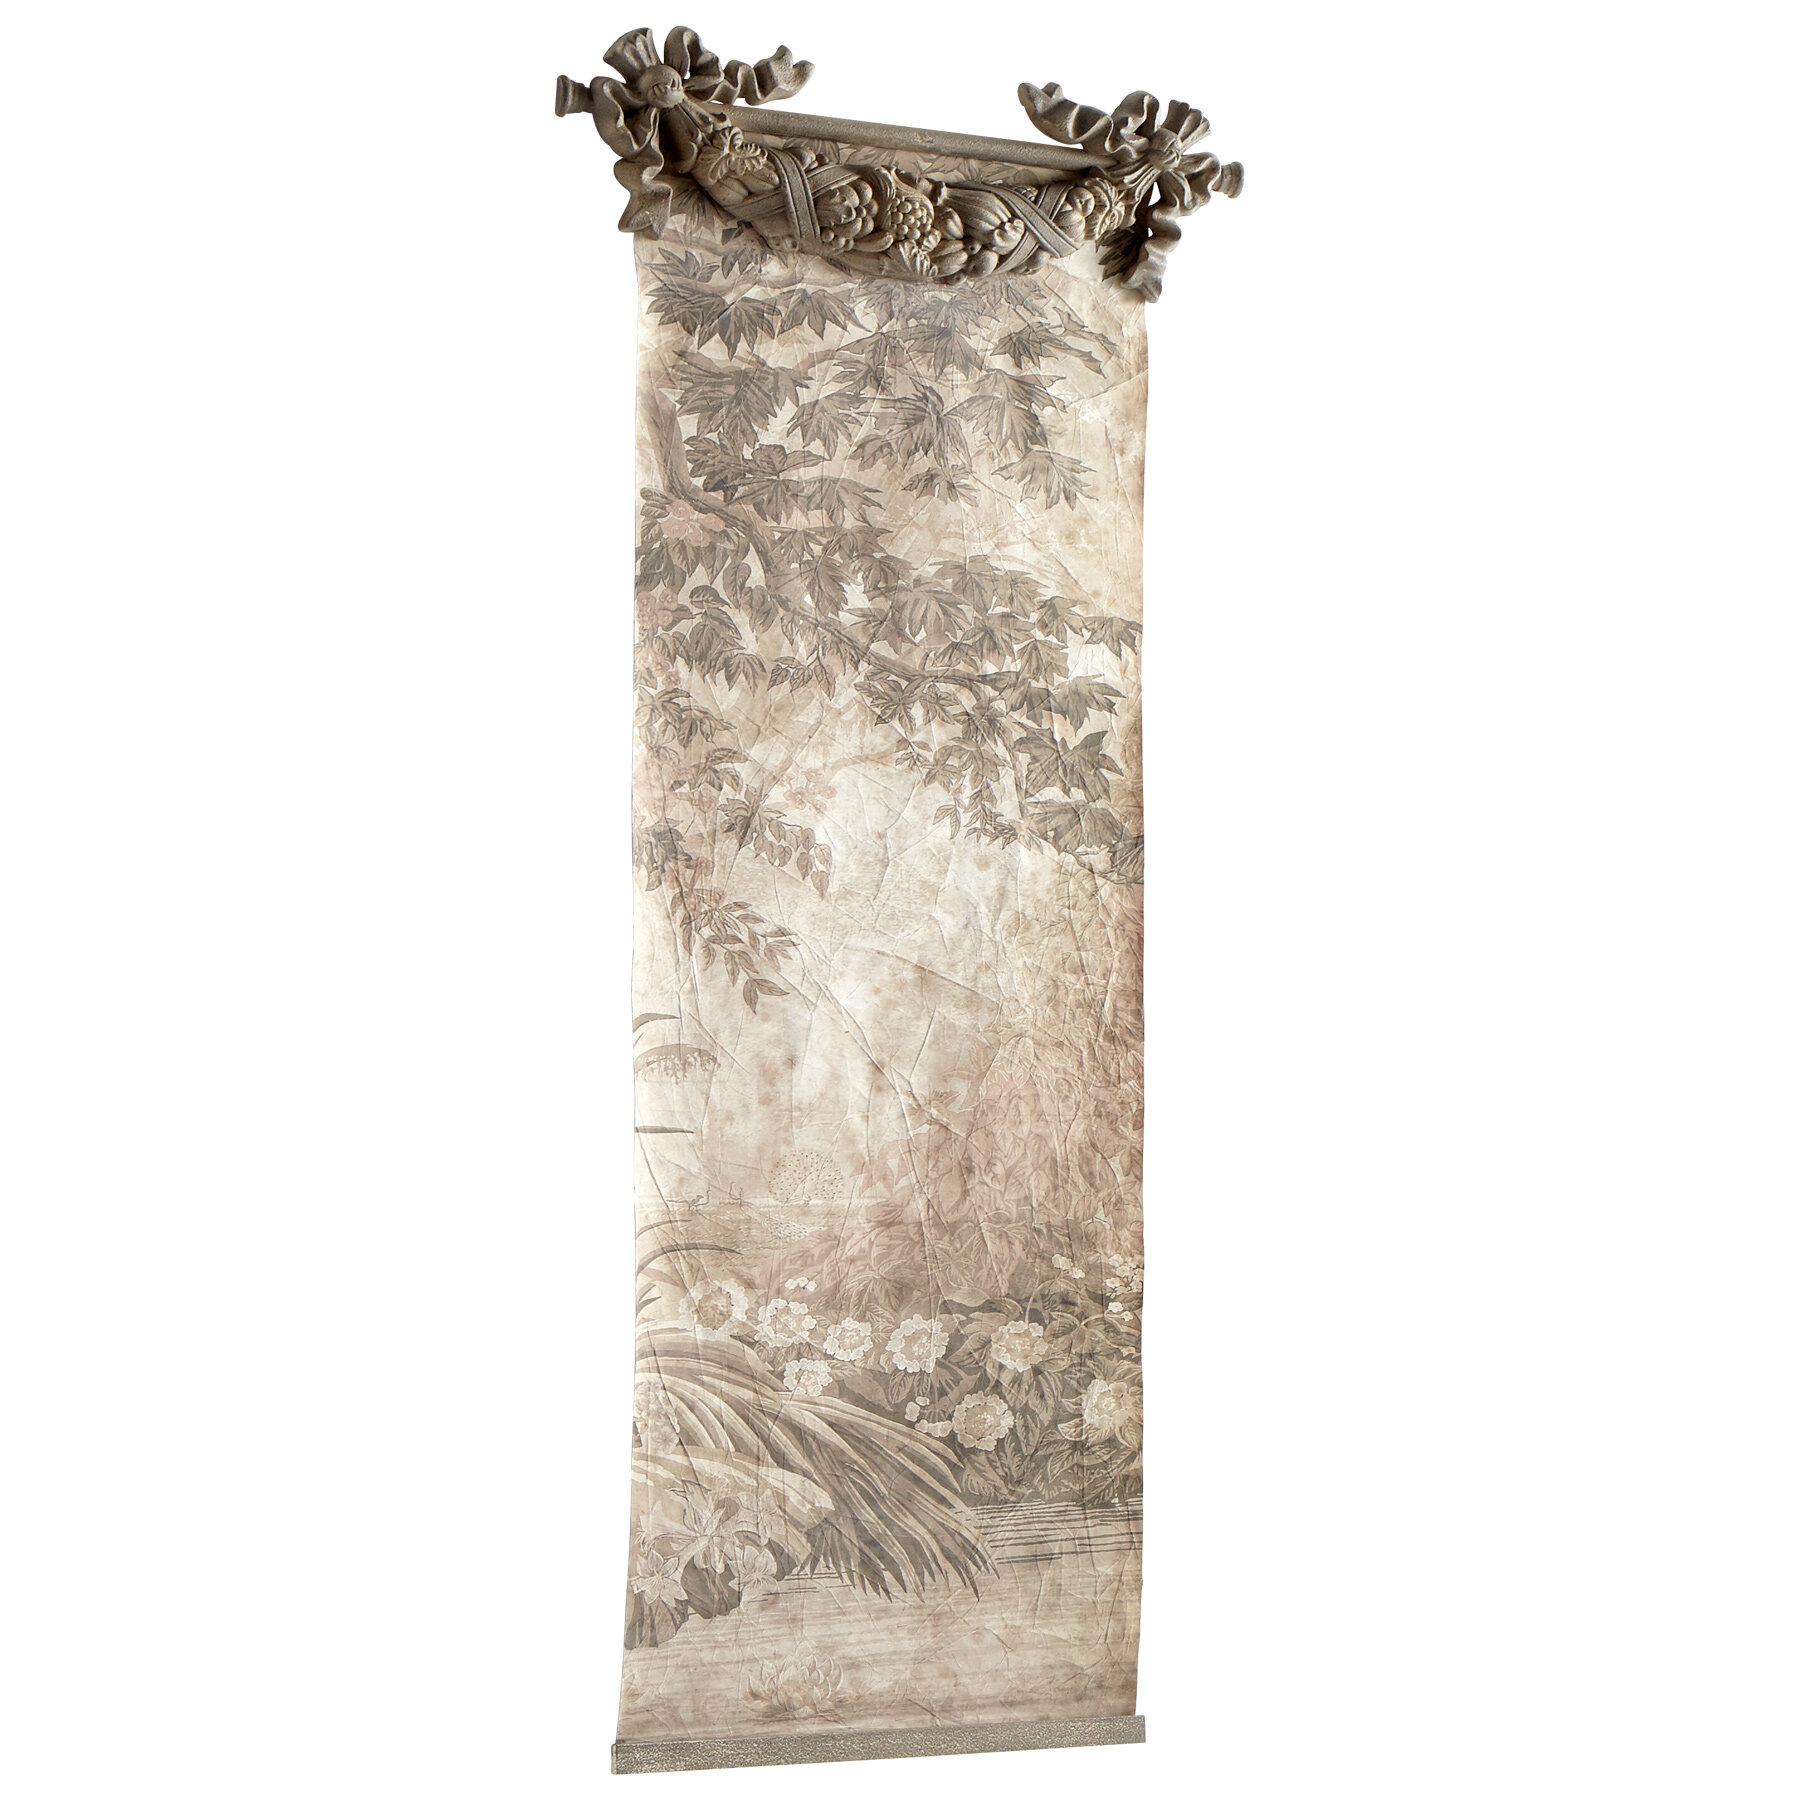 Blended Fabric Hidden Garden Chinoiserie Wall Hanging With Rod Within Best And Newest Blended Fabric Havenwood Chinoiserie Tapestries Rod Included (View 3 of 20)